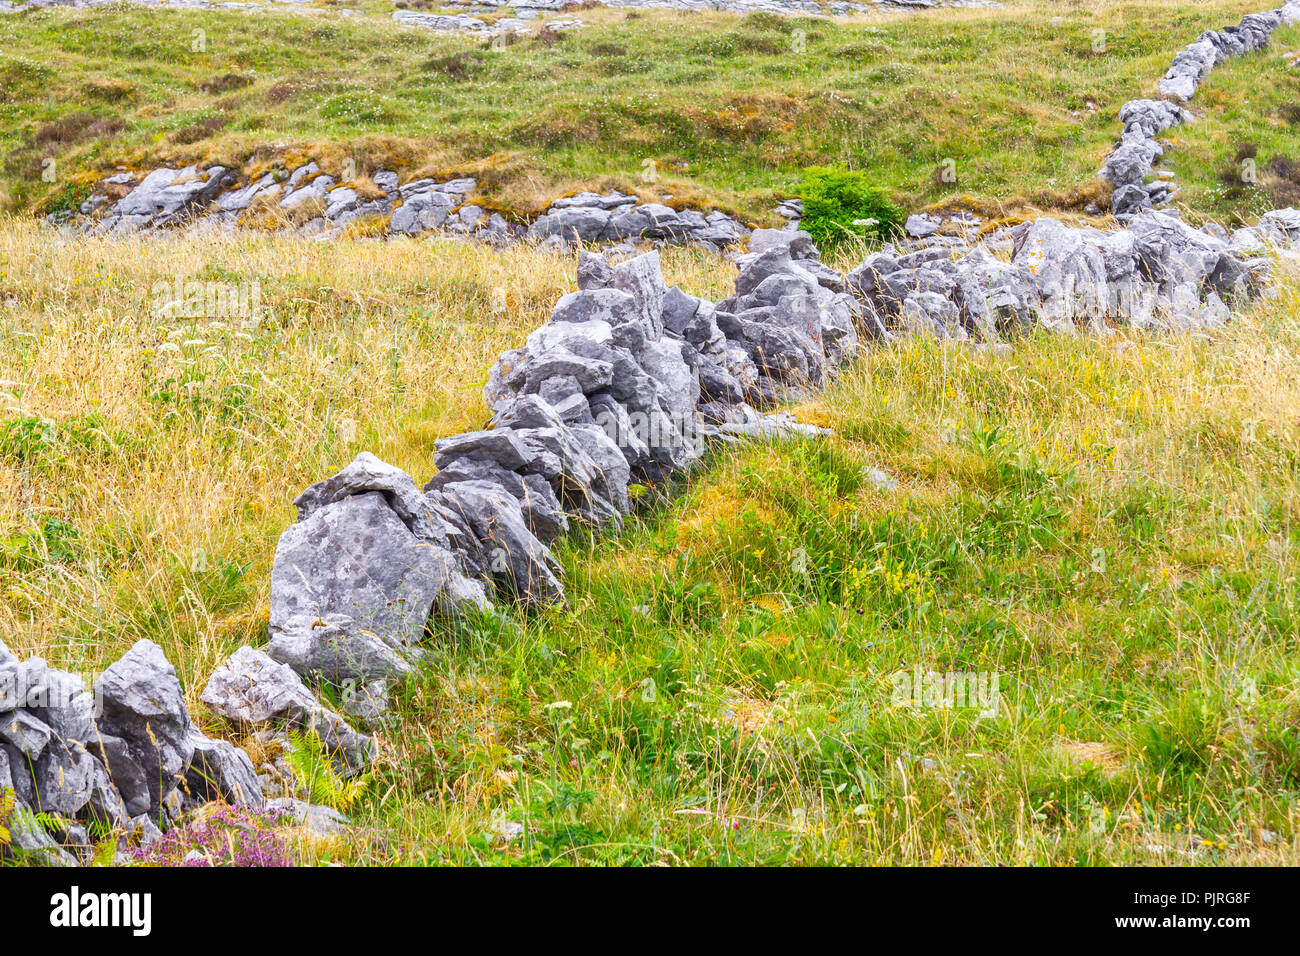 Stone wall and Farm field in Ballyvaughan, Ireland - Stock Image